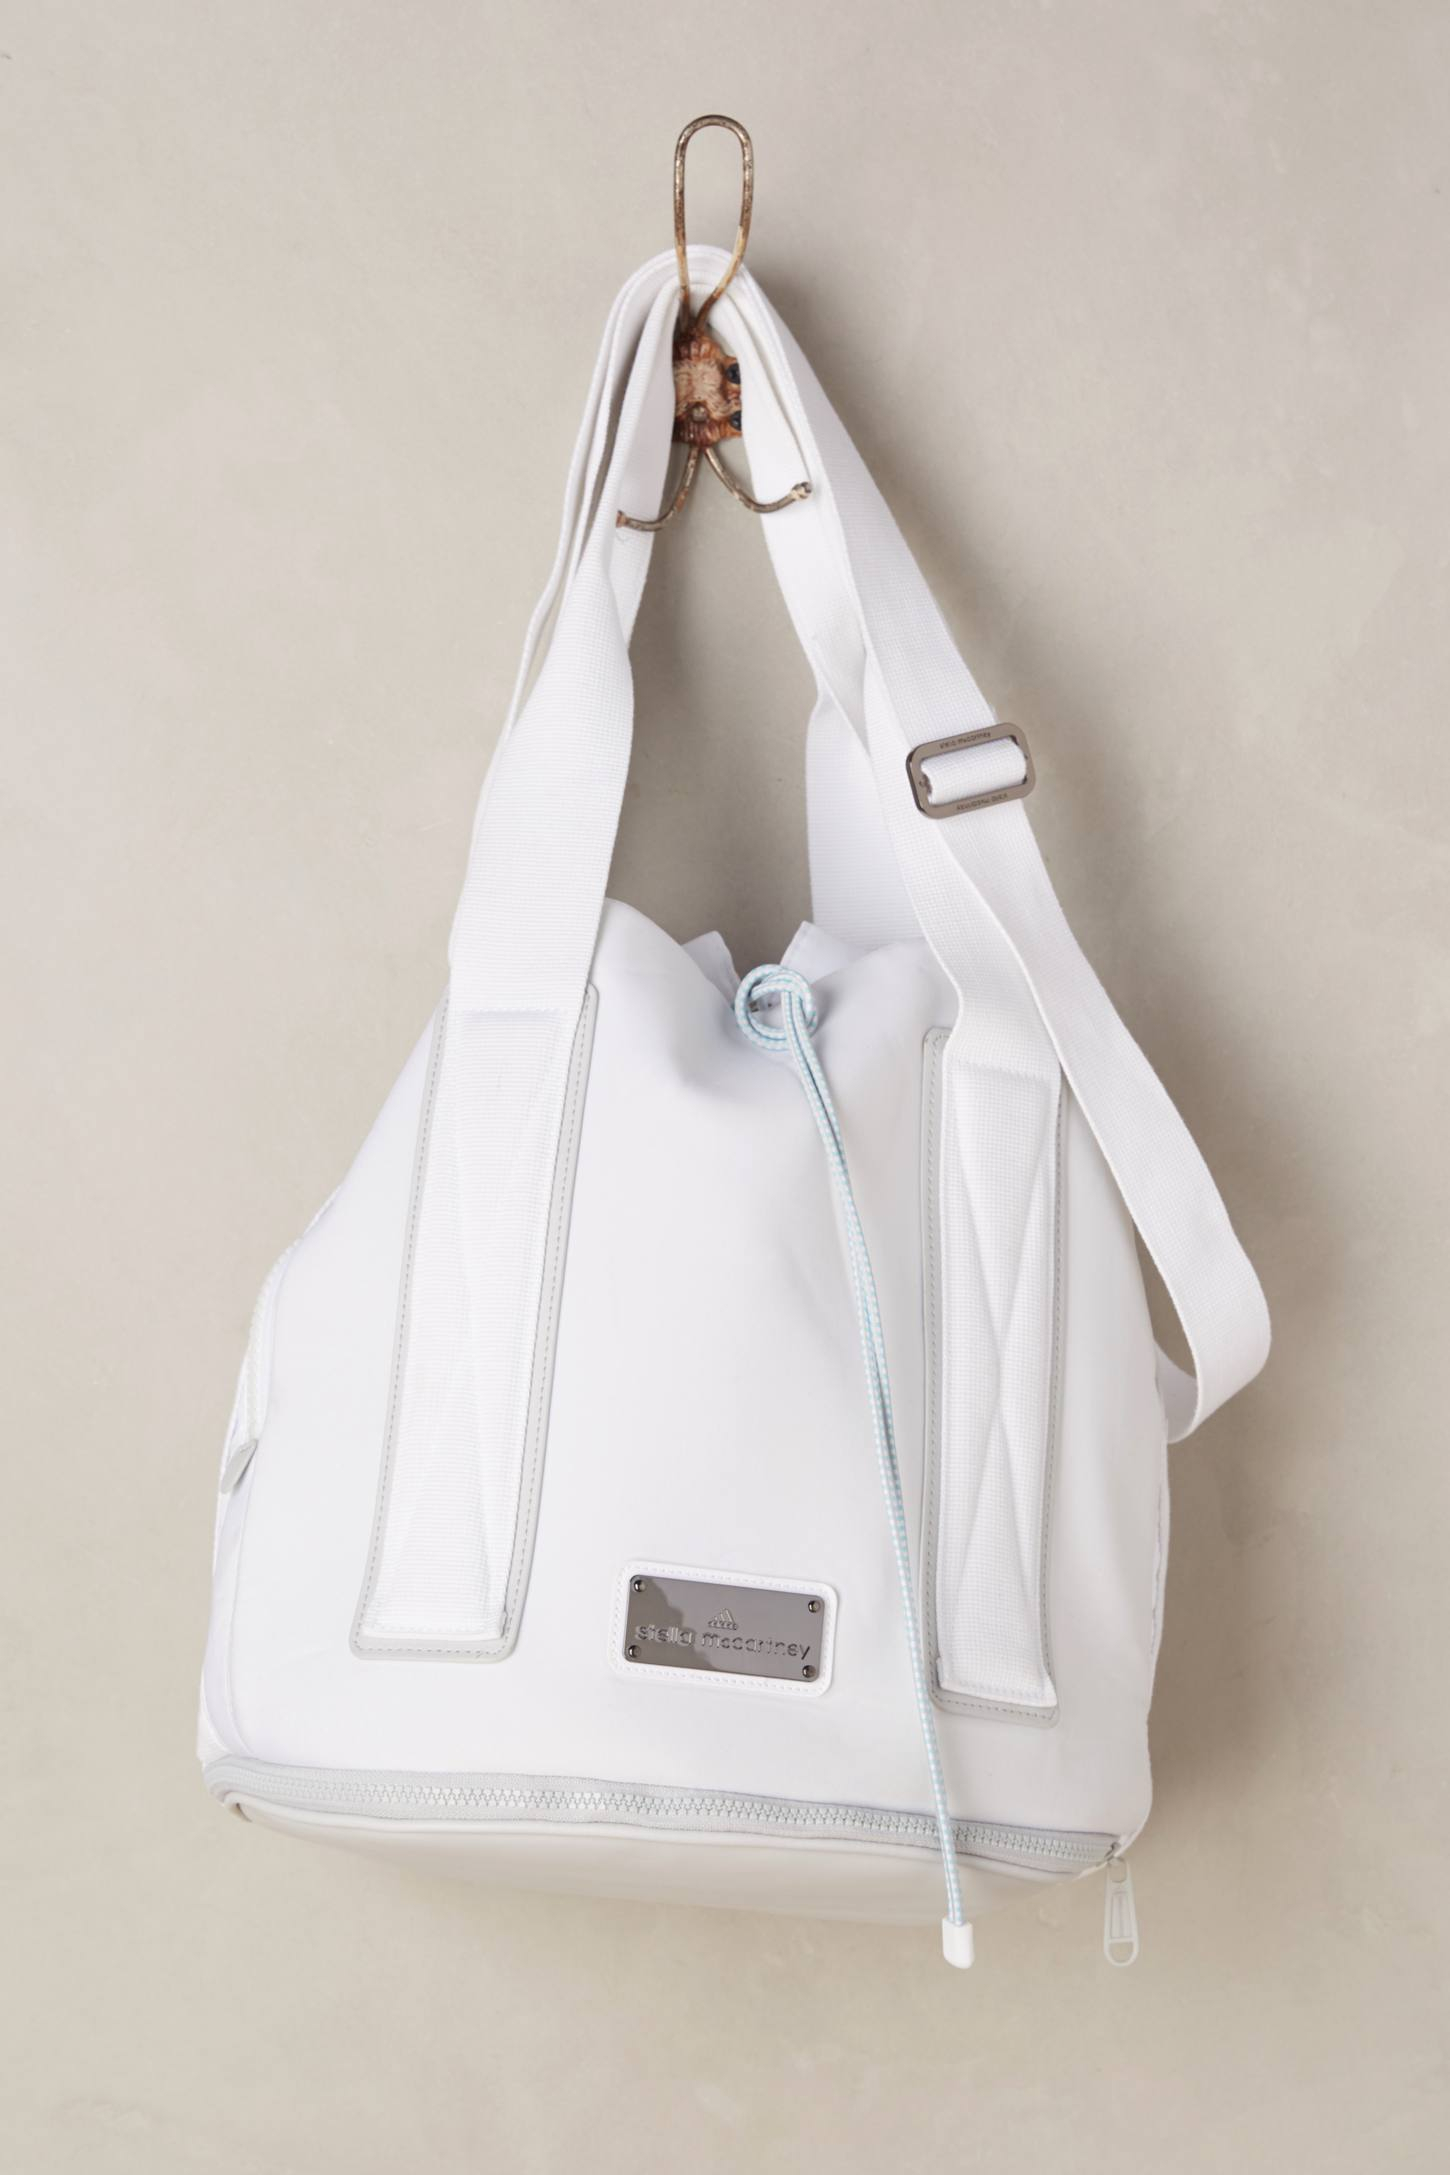 a9937b0fcb Adidas by stella mccartney Tennis Bag in White